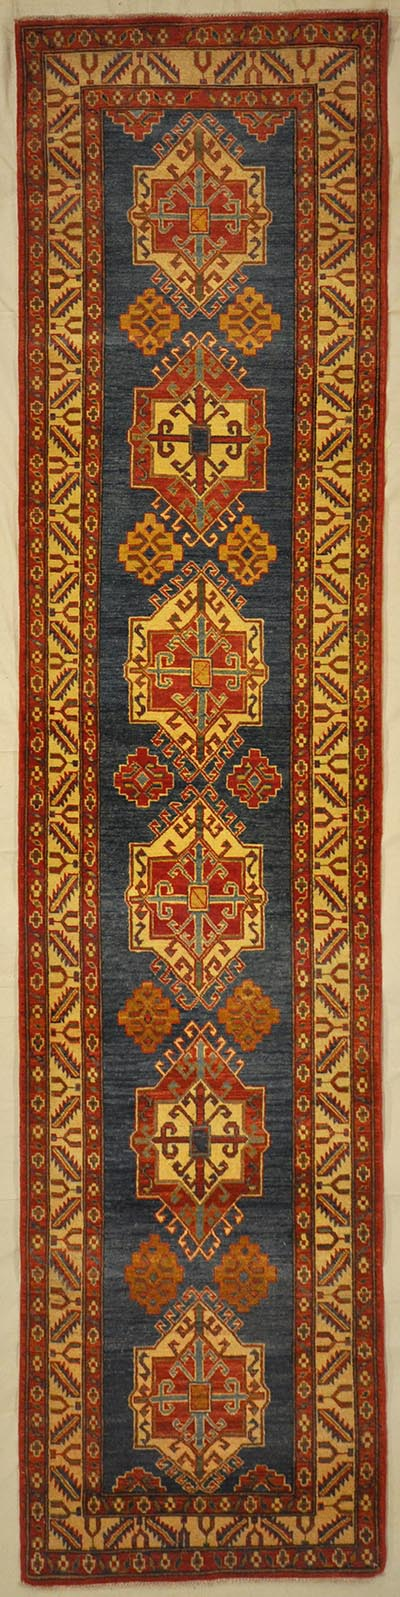 fine kazak rugs and more oriental carpet ziegler co 32551